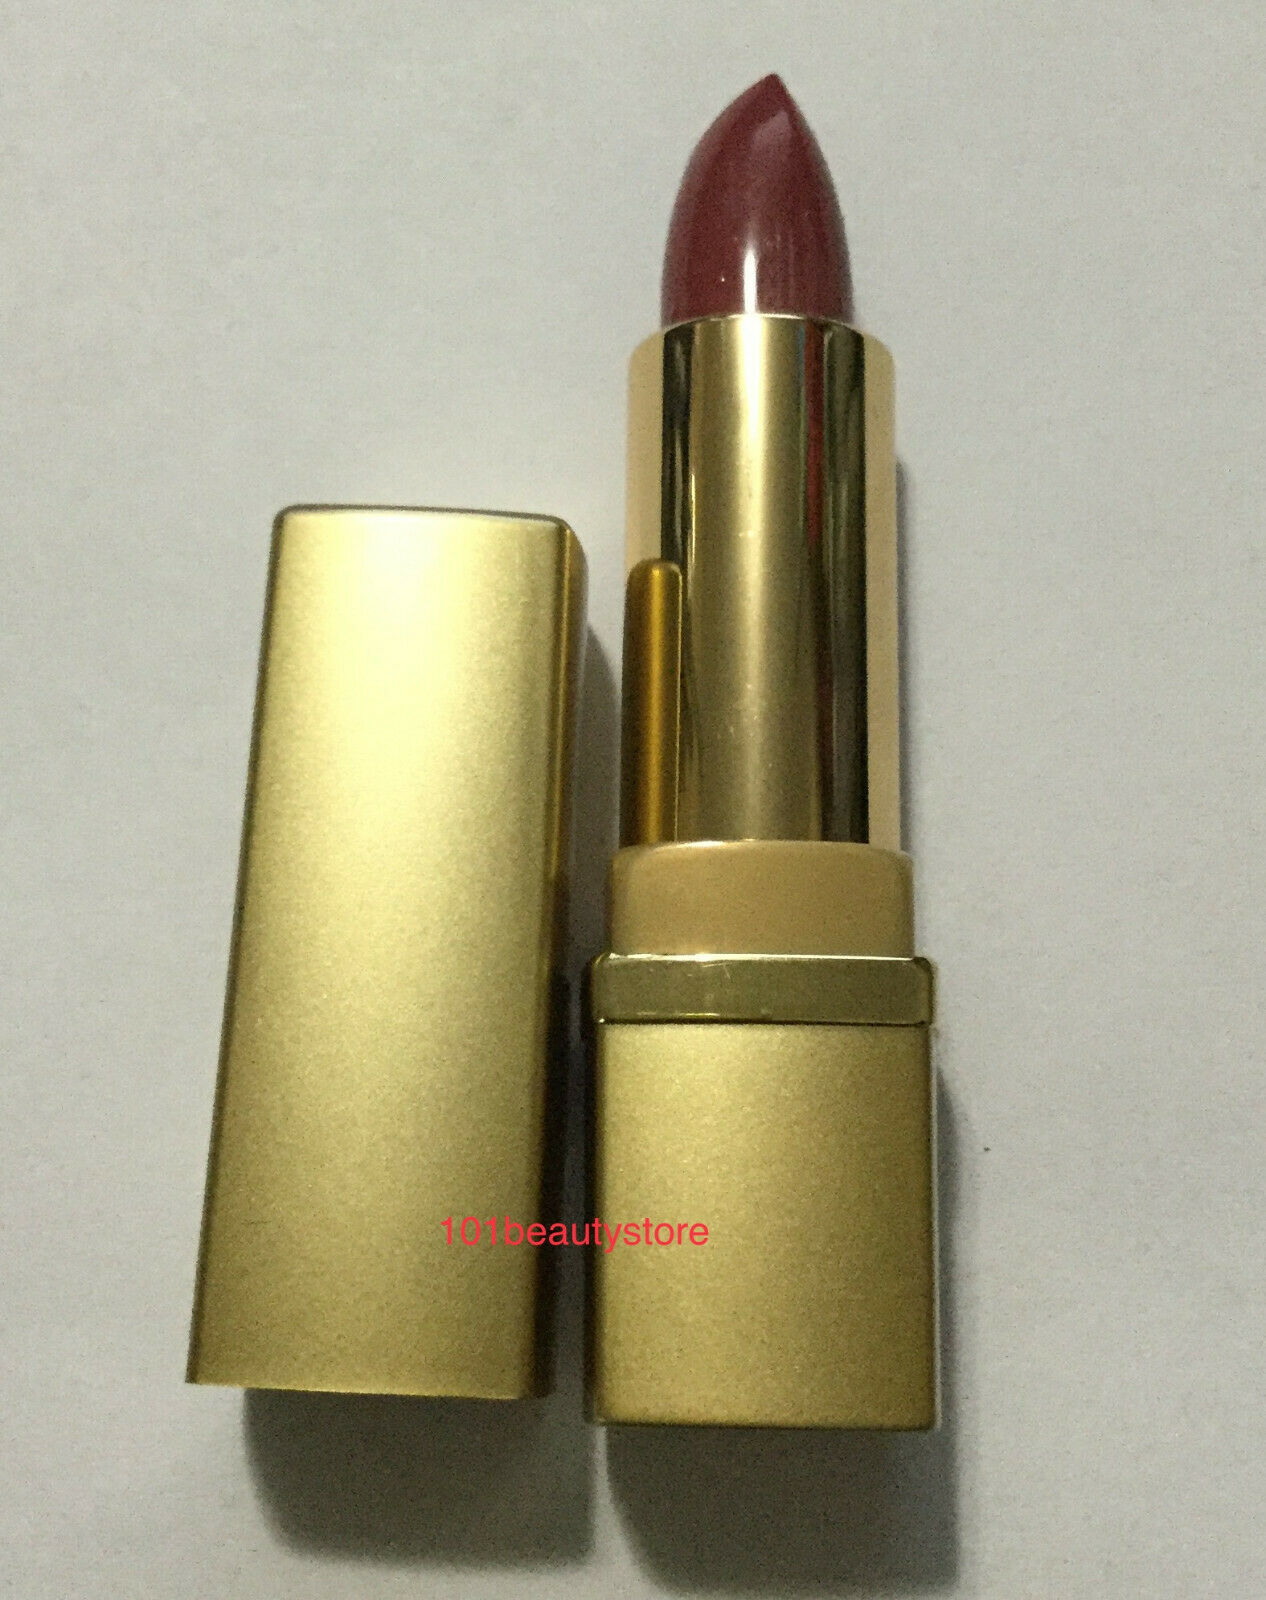 Primary image for ESTEE LAUDER Pure Color Long Lasting Lipstick GOLD SQUARE CASE *NEW.UNBOXED*